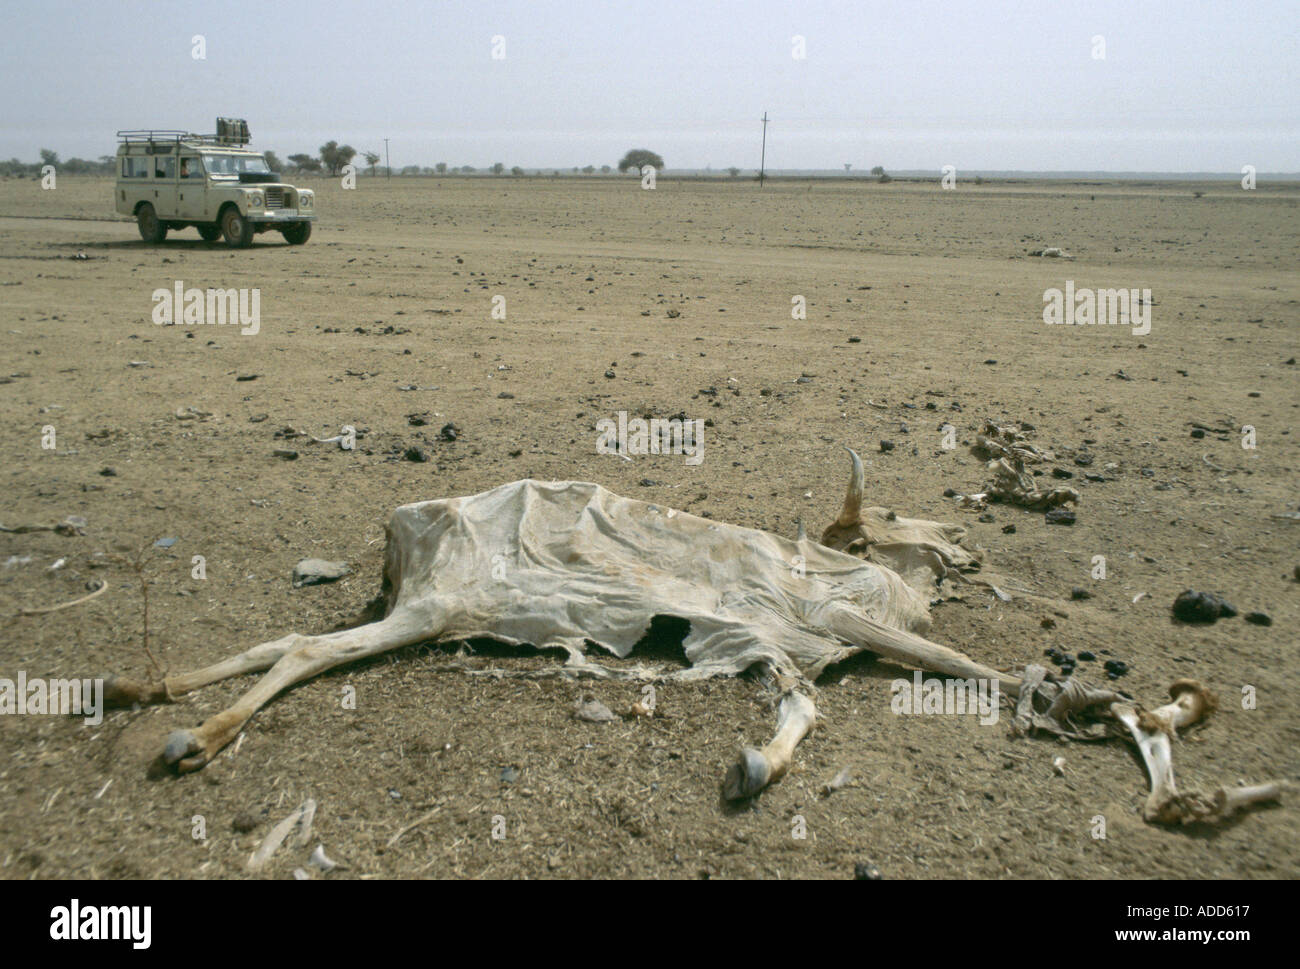 Drought in Burkina Faso White Land Rover 4 wheel drive vehicle drives past dried out carcass - Stock Image